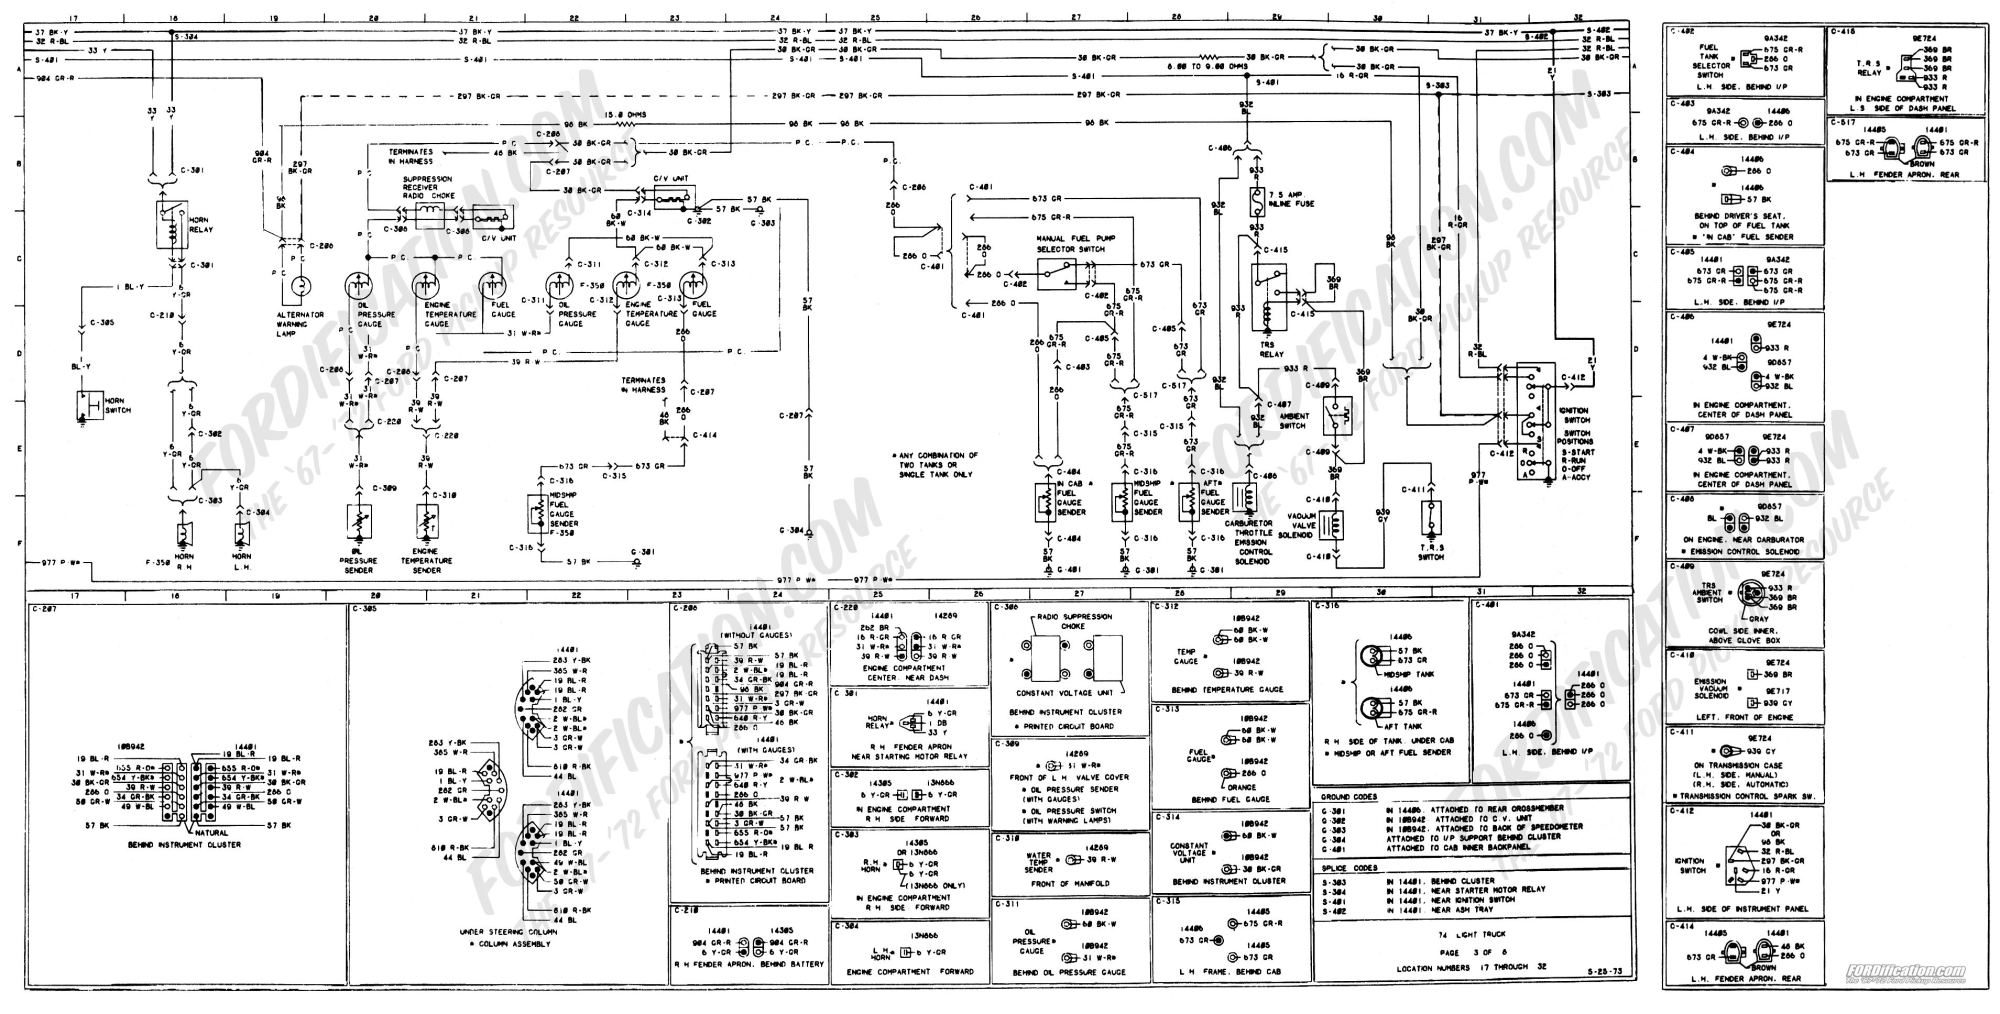 hight resolution of 1973 1979 ford truck wiring diagrams schematics fordification net chrysler ignition wiring diagram 1979 ford f150 ignition wiring diagram